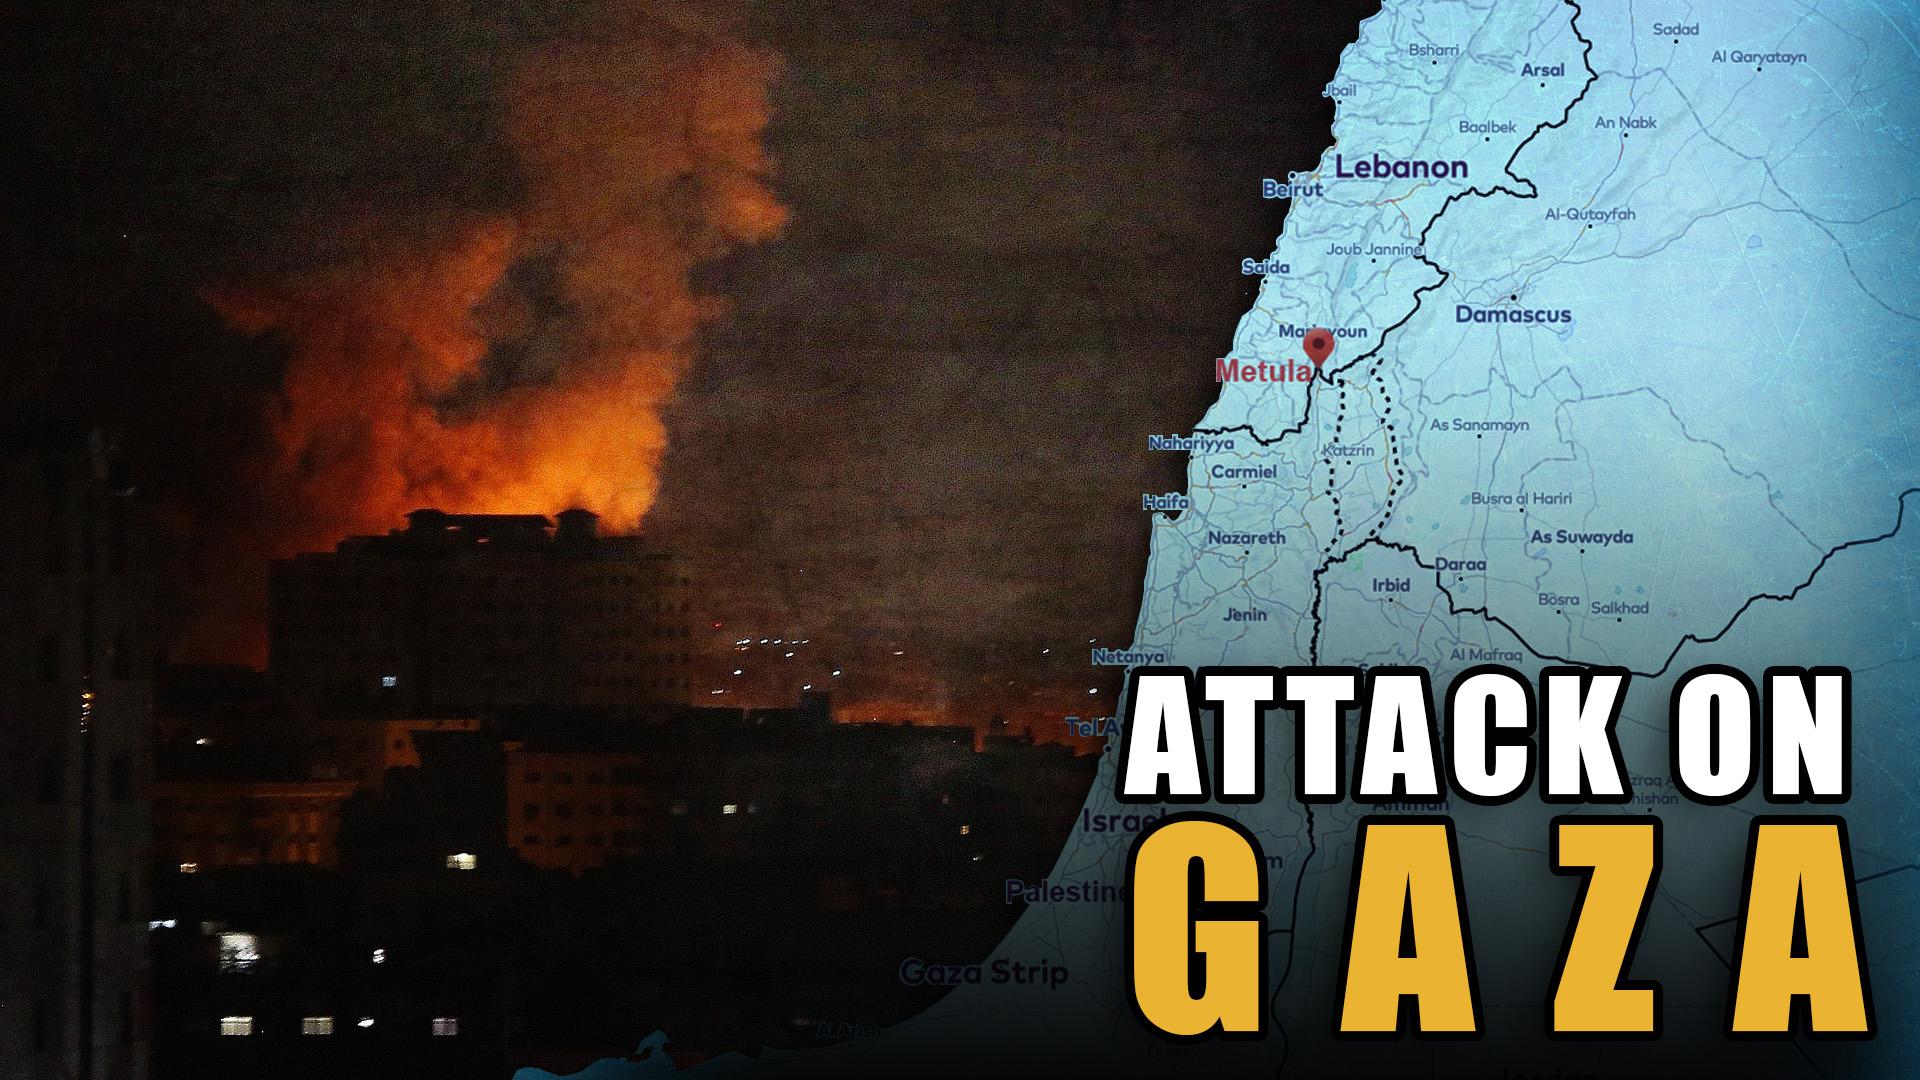 Airstrikes in Gaza: Israeli Right Wing Steps Up Warmongering